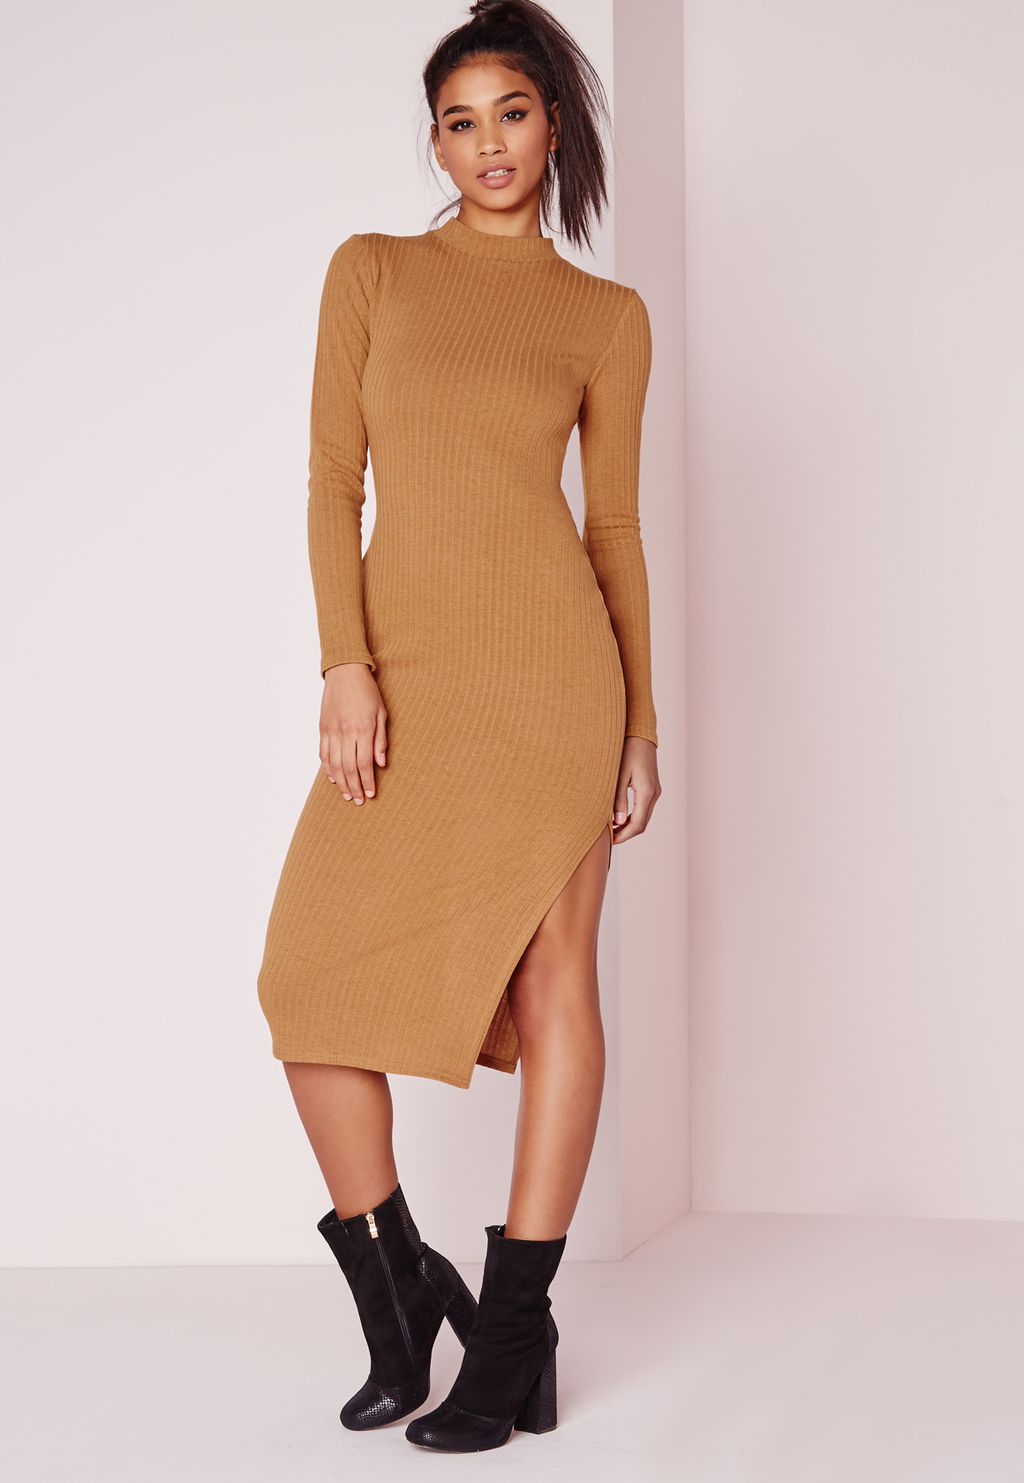 Long Sleeve Midi Dress Camel Rib, Brown - length: calf length; fit: tight; pattern: plain; neckline: high neck; style: bodycon; hip detail: draws attention to hips; predominant colour: camel; occasions: evening; fibres: polyester/polyamide - stretch; sleeve length: long sleeve; sleeve style: standard; texture group: jersey - clingy; pattern type: fabric; season: s/s 2016; wardrobe: event